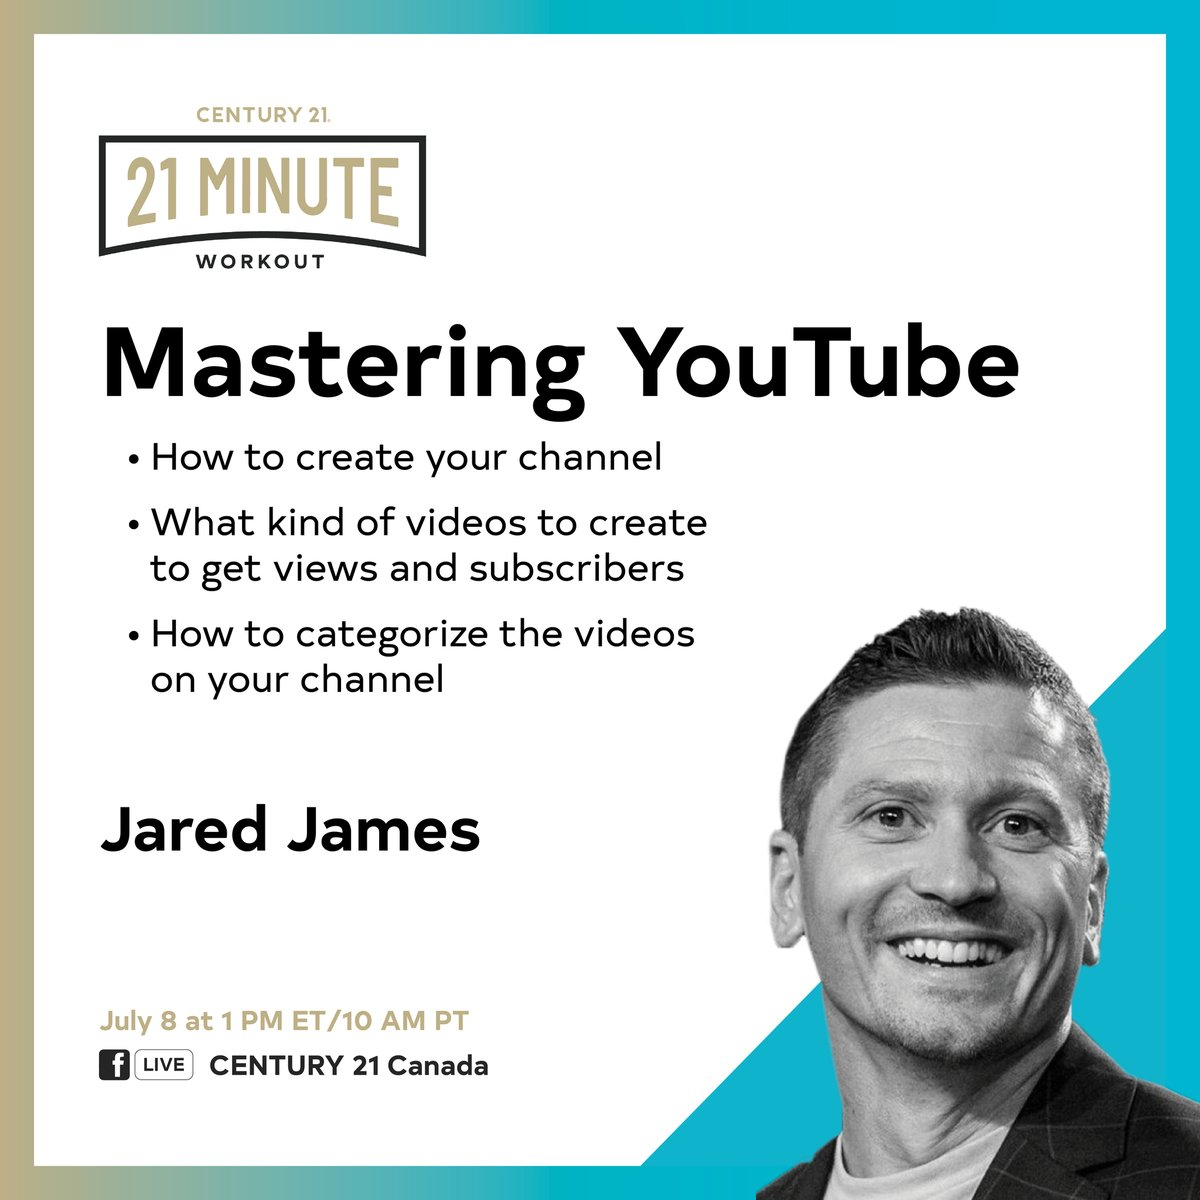 Learn how to master YouTube today at 1! #berelentless #staysafe #C21 #C21United #WhyC21United #387George #loveyourlocalrealtor #PTBO #Peterborough #RealEstate #Kawarthas #PtboCanada #Realtor #firsttimehomebuyer... http://www.facebook.com/291169517561239_3383046298373530…pic.twitter.com/jESLWsutPa